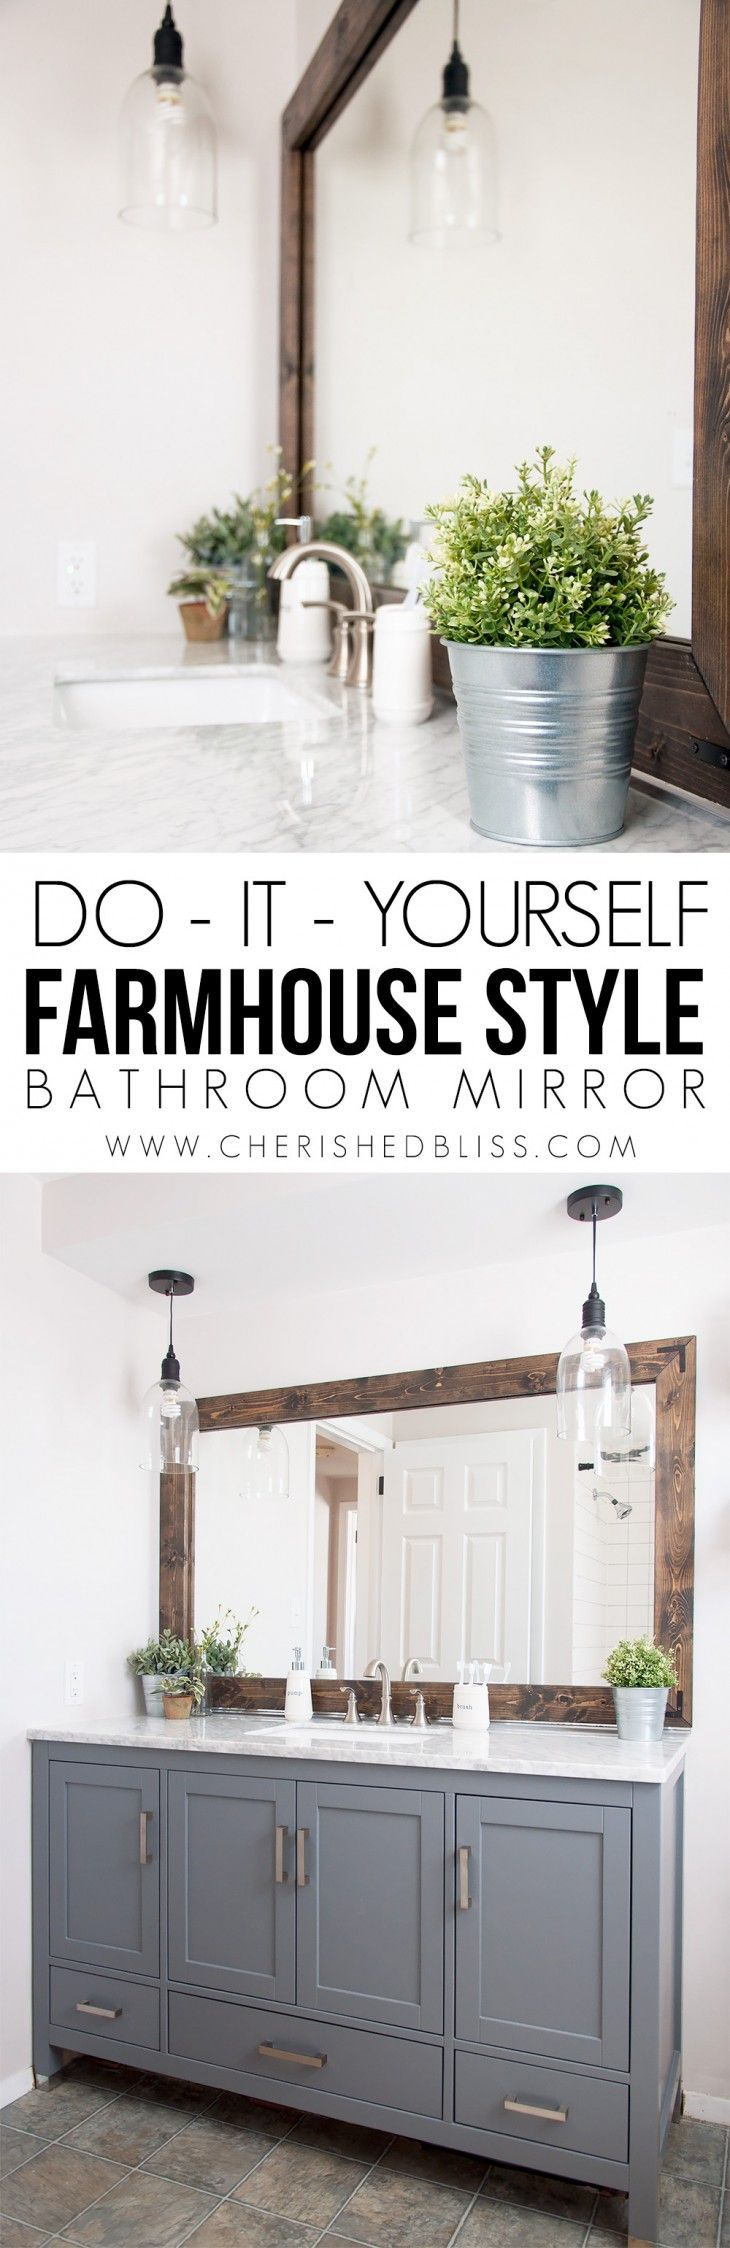 Modern bathroom mirrors - 17 Best Ideas About Modern Bathroom Mirrors On Pinterest Mirror Powder Black Round Mirror And Modern Bathrooms